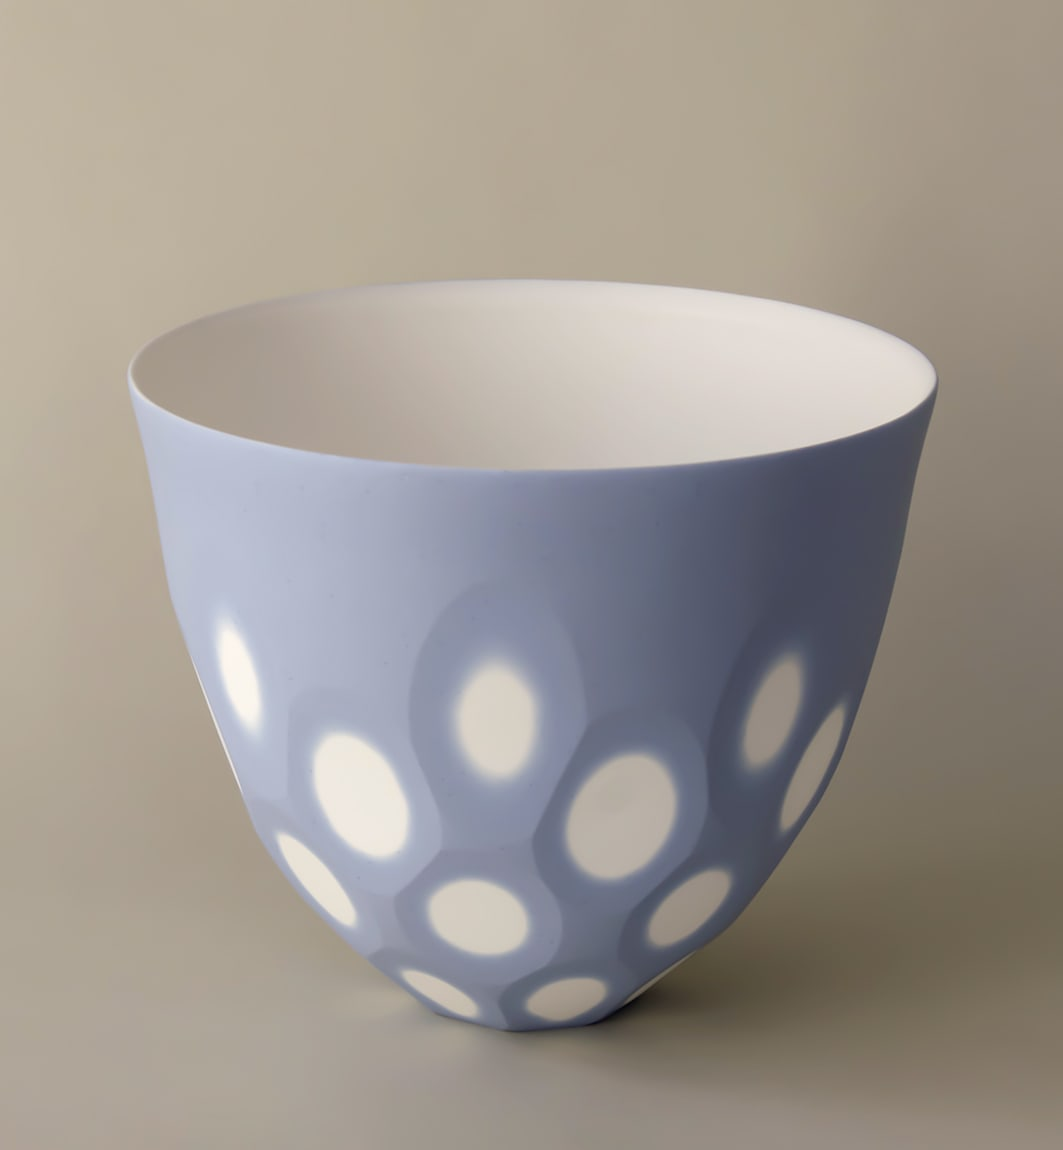 """<span class=""""link fancybox-details-link""""><a href=""""/artists/60-sasha-wardell/works/7314-sasha-wardell-medium-space-bowl-lilac-2020/"""">View Detail Page</a></span><div class=""""artist""""><strong>Sasha Wardell</strong></div> b. 1956 <div class=""""title""""><em>Medium Space Bowl Lilac</em>, 2020</div> <div class=""""medium"""">porcelain</div> <div class=""""dimensions"""">h. 14 x dia. 18 cm </div><div class=""""price"""">£200.00</div><div class=""""copyright_line"""">Ownart: £20 x 10 Months, 0% APR</div>"""